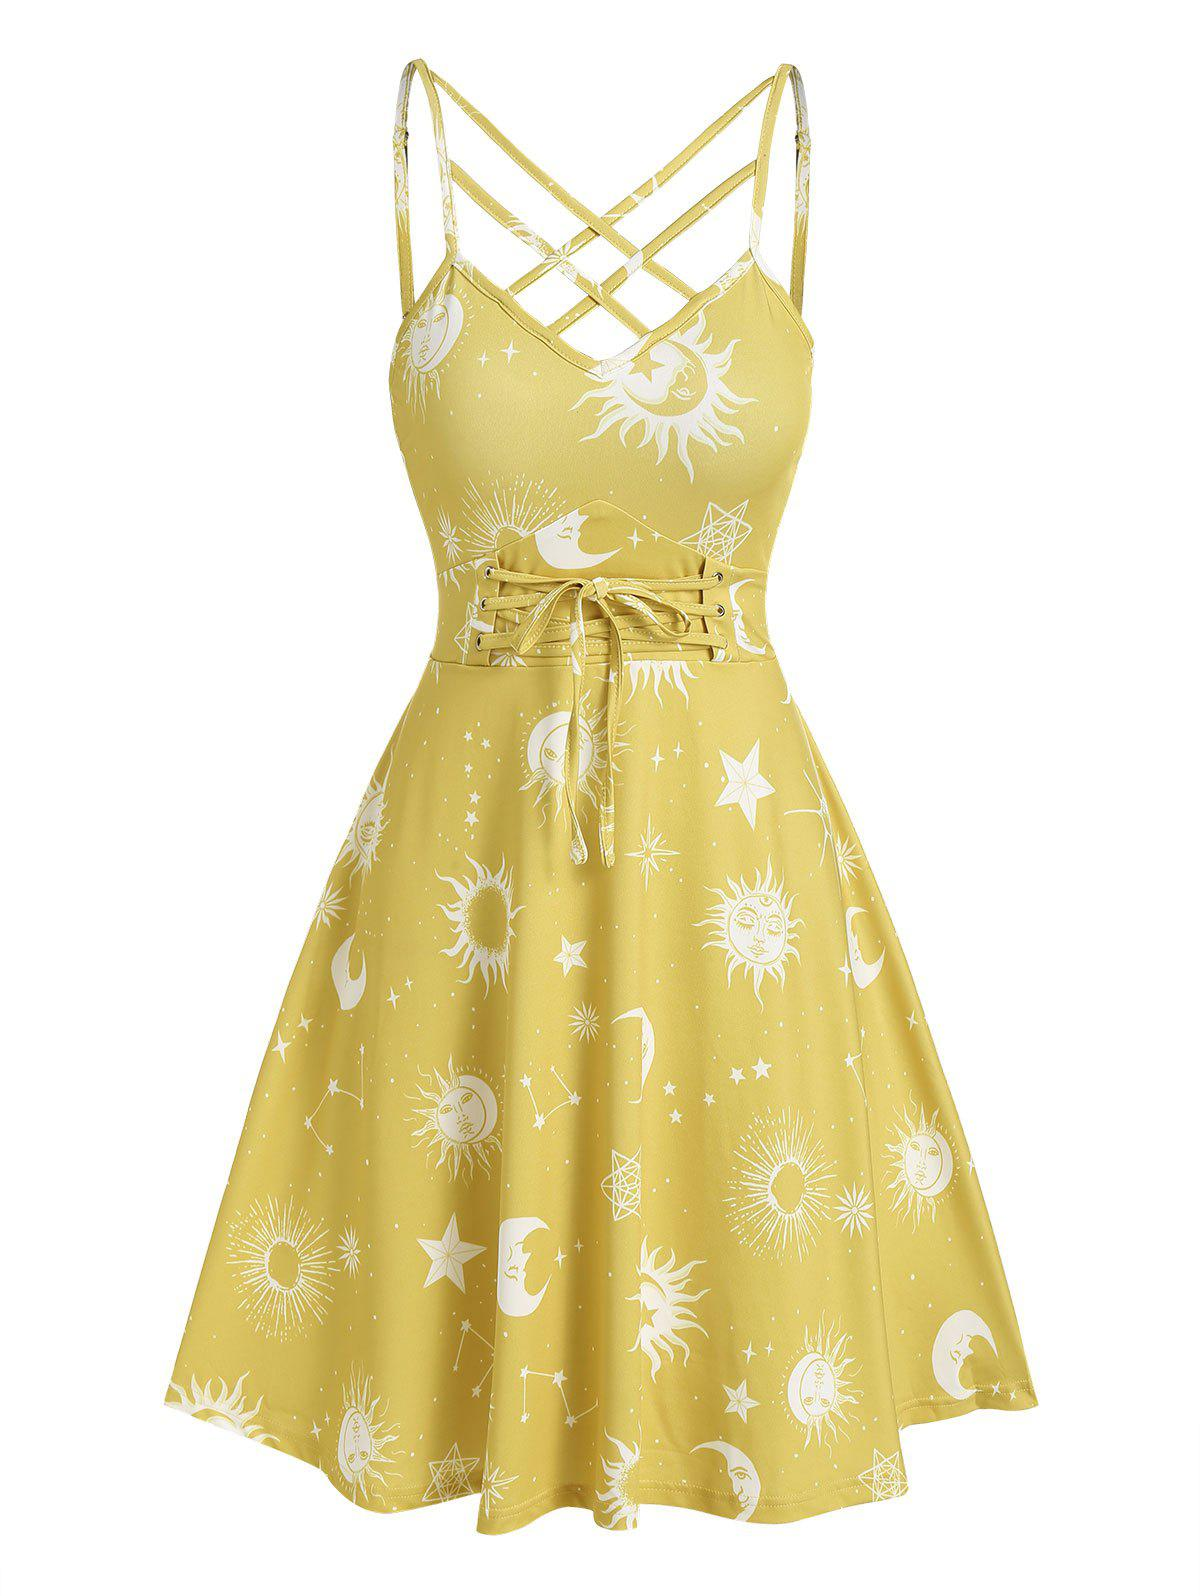 Sun Moon Print Crisscross Dress - DEEP YELLOW L